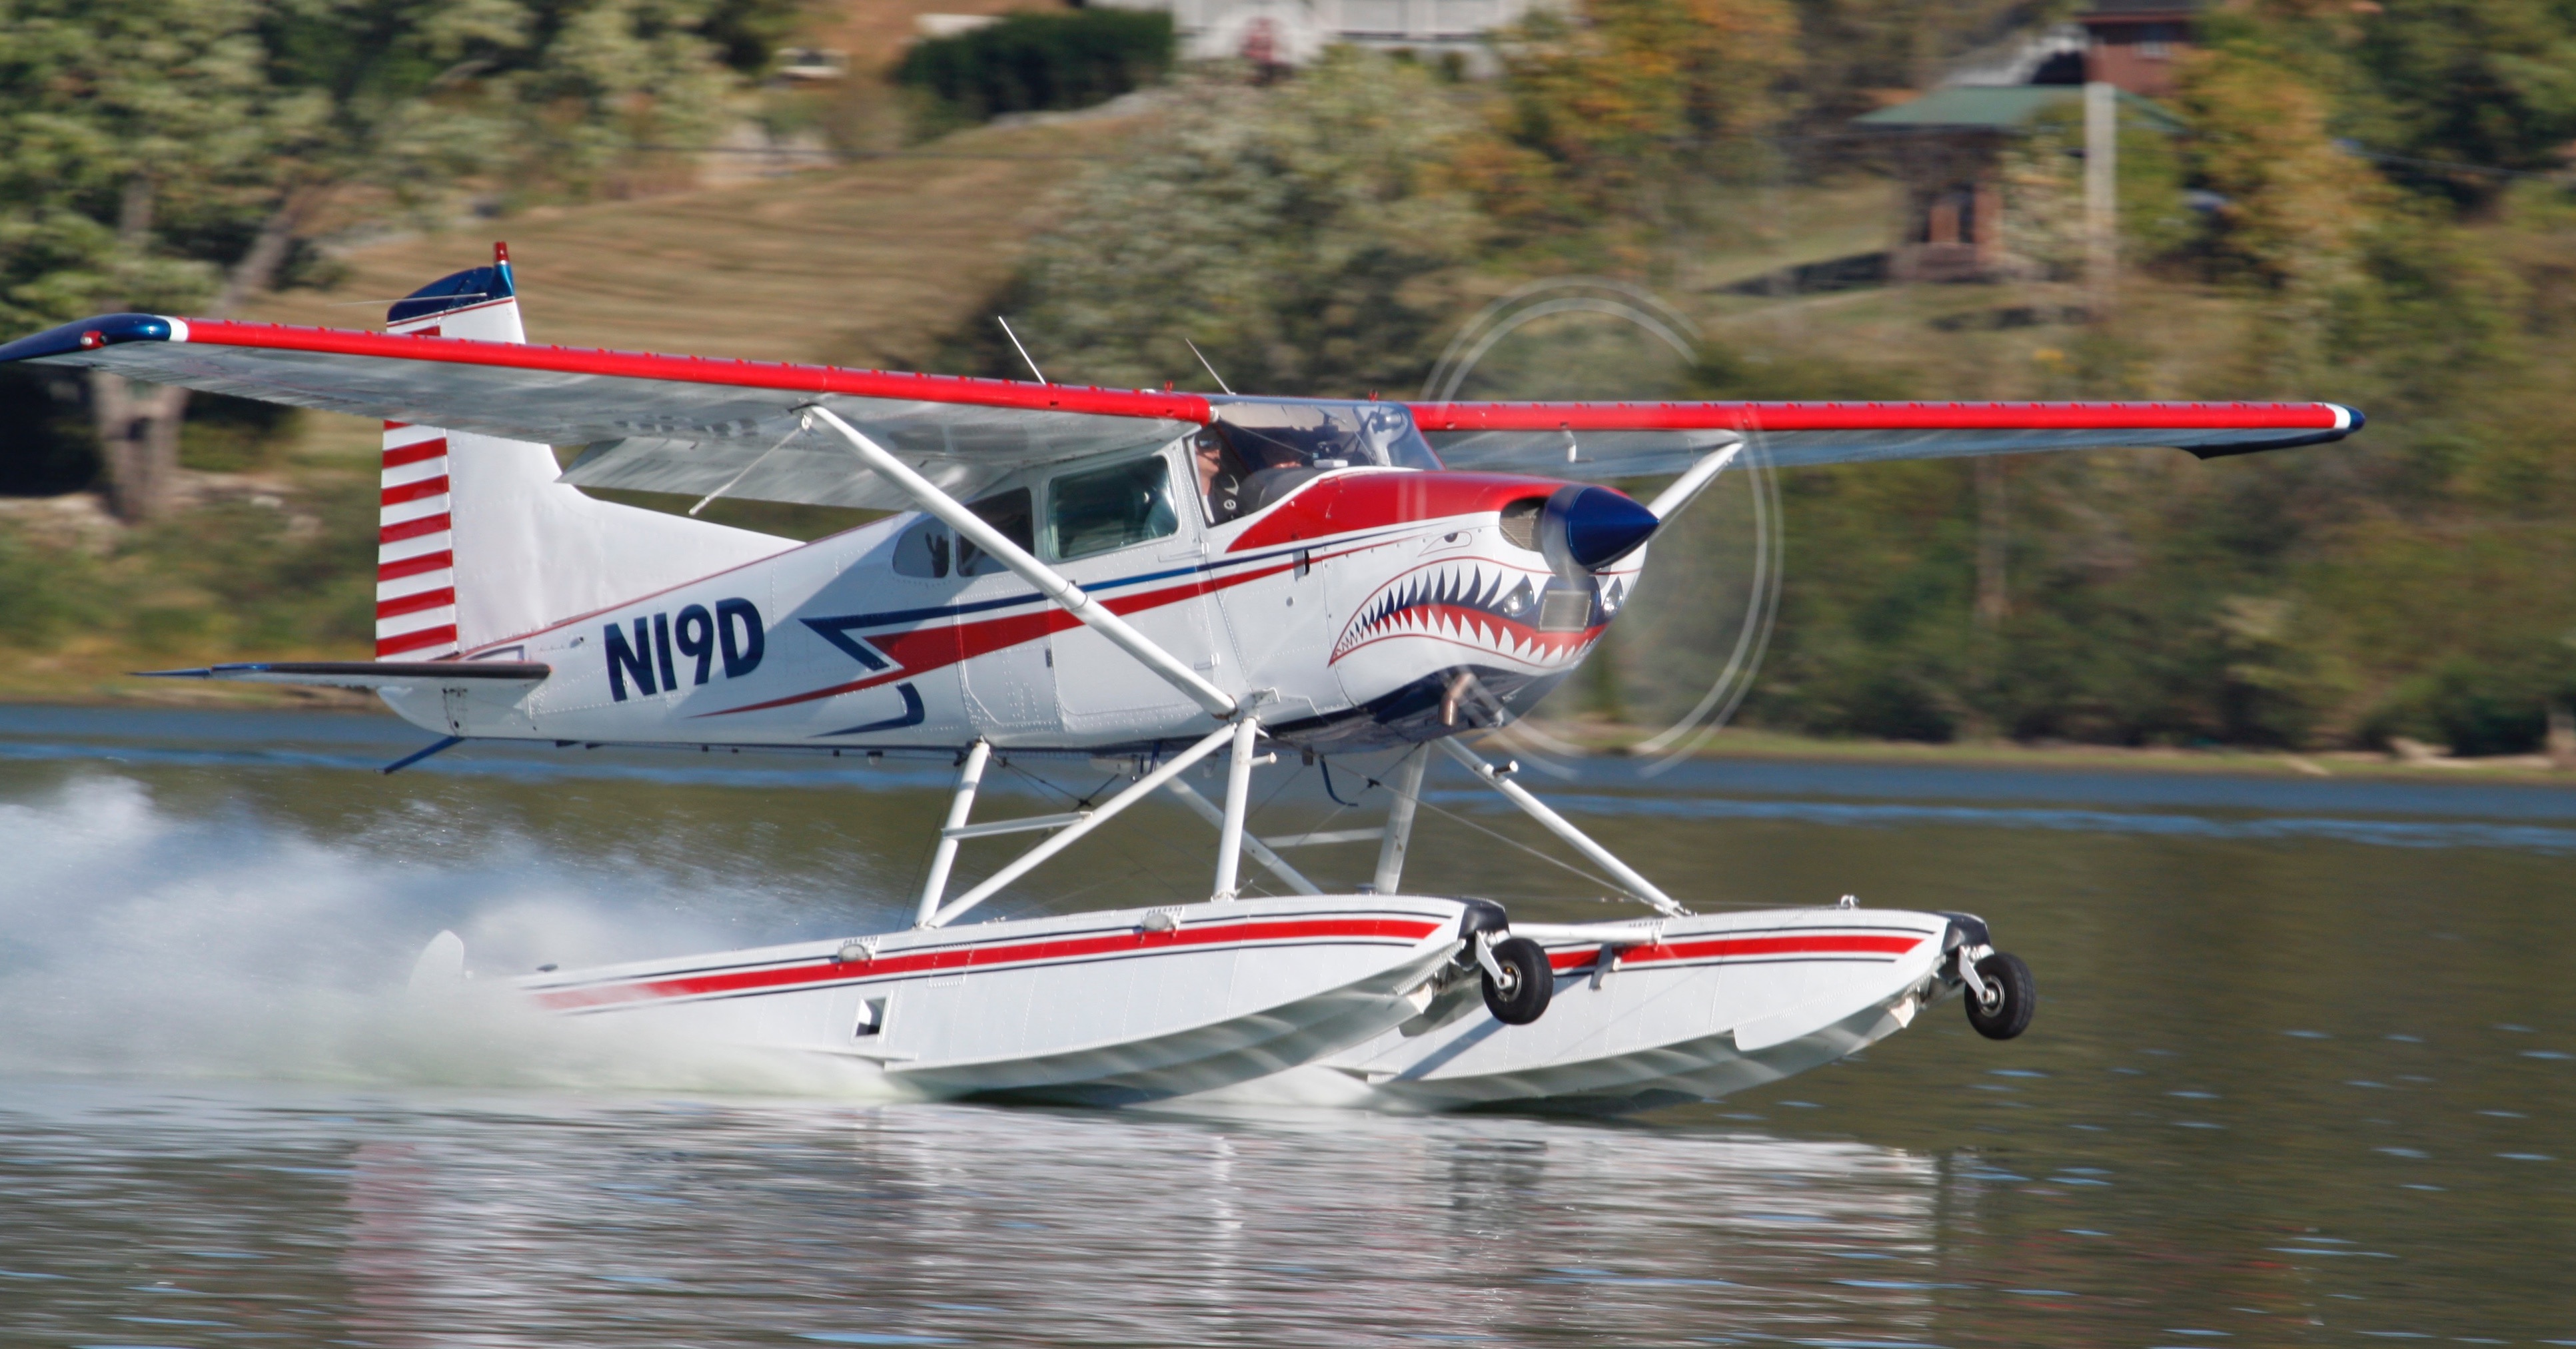 Shark Aviation N19D A185F Seaplane on the step